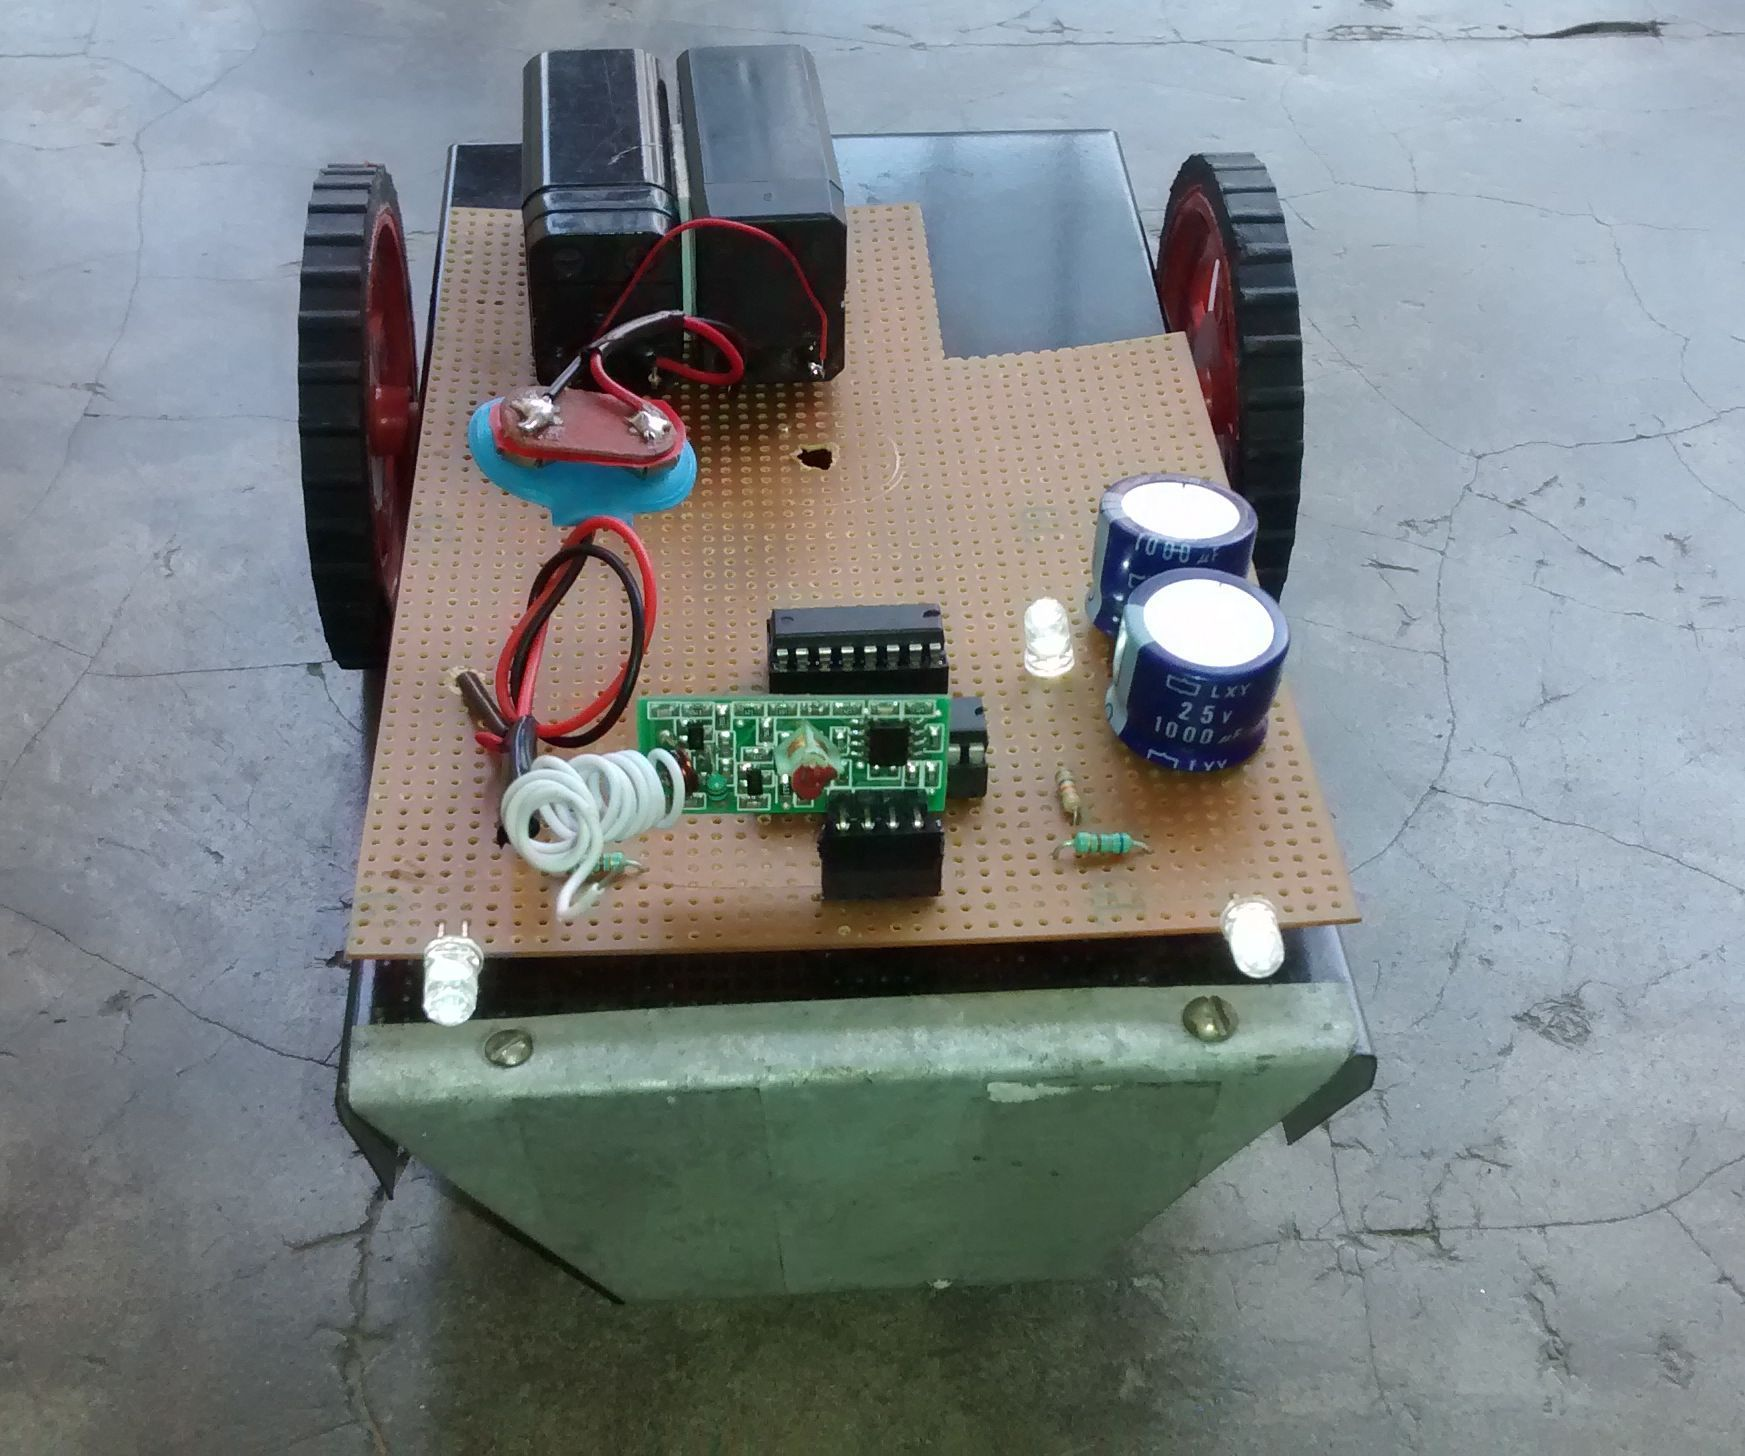 Homemade Rc Car Small Projects Pinterest Cars And Remote Controlled Dc Motor For Toy Circuit Diagram Circuits This Is My First Instructable So Please Bear With Me Guys I Loved Playing When Was Thought Of Making One Now Have Some